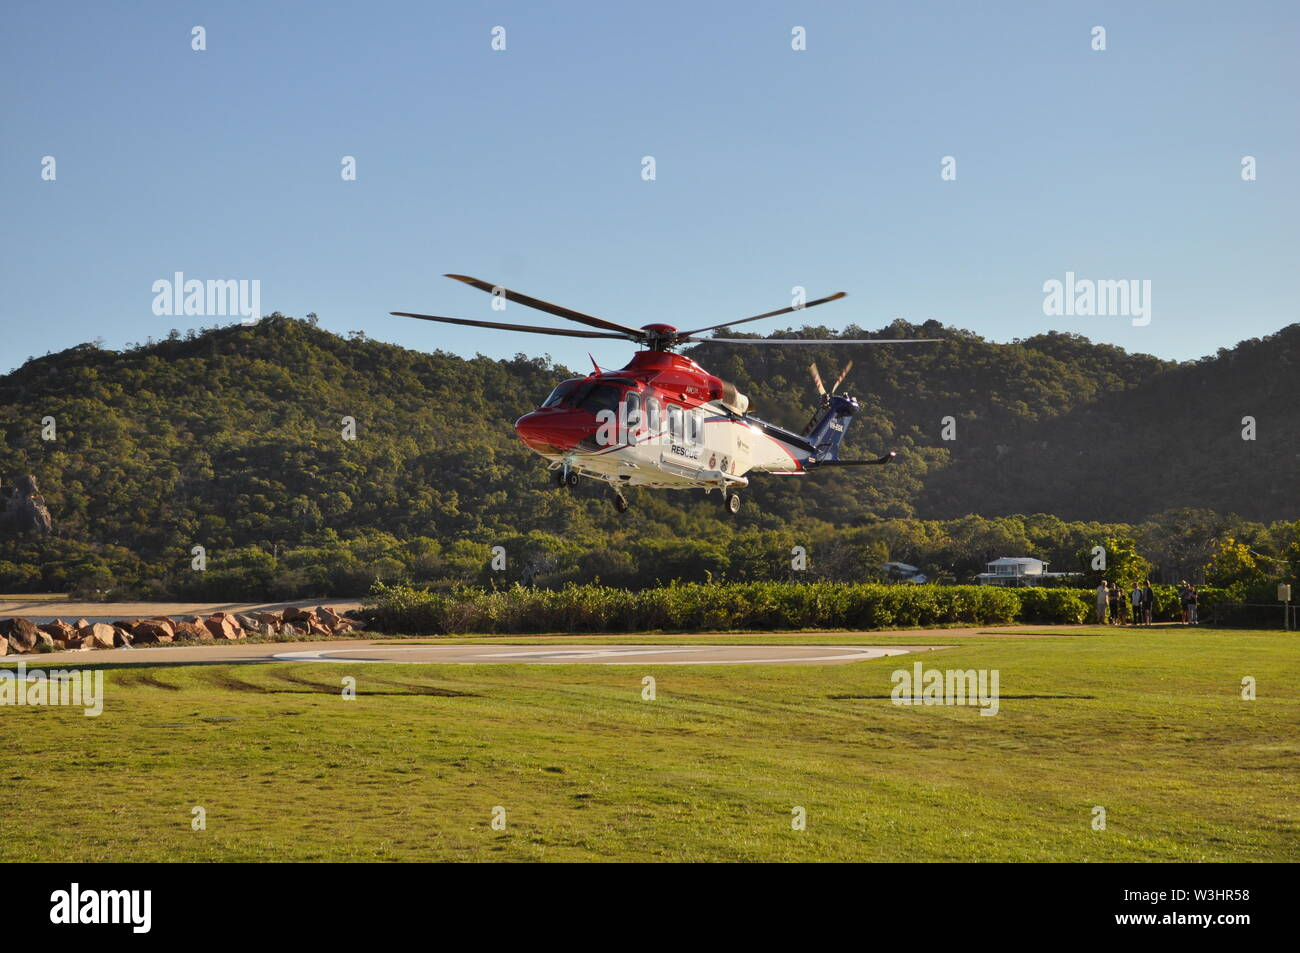 Go By Helicopter Stock Photos & Go By Helicopter Stock